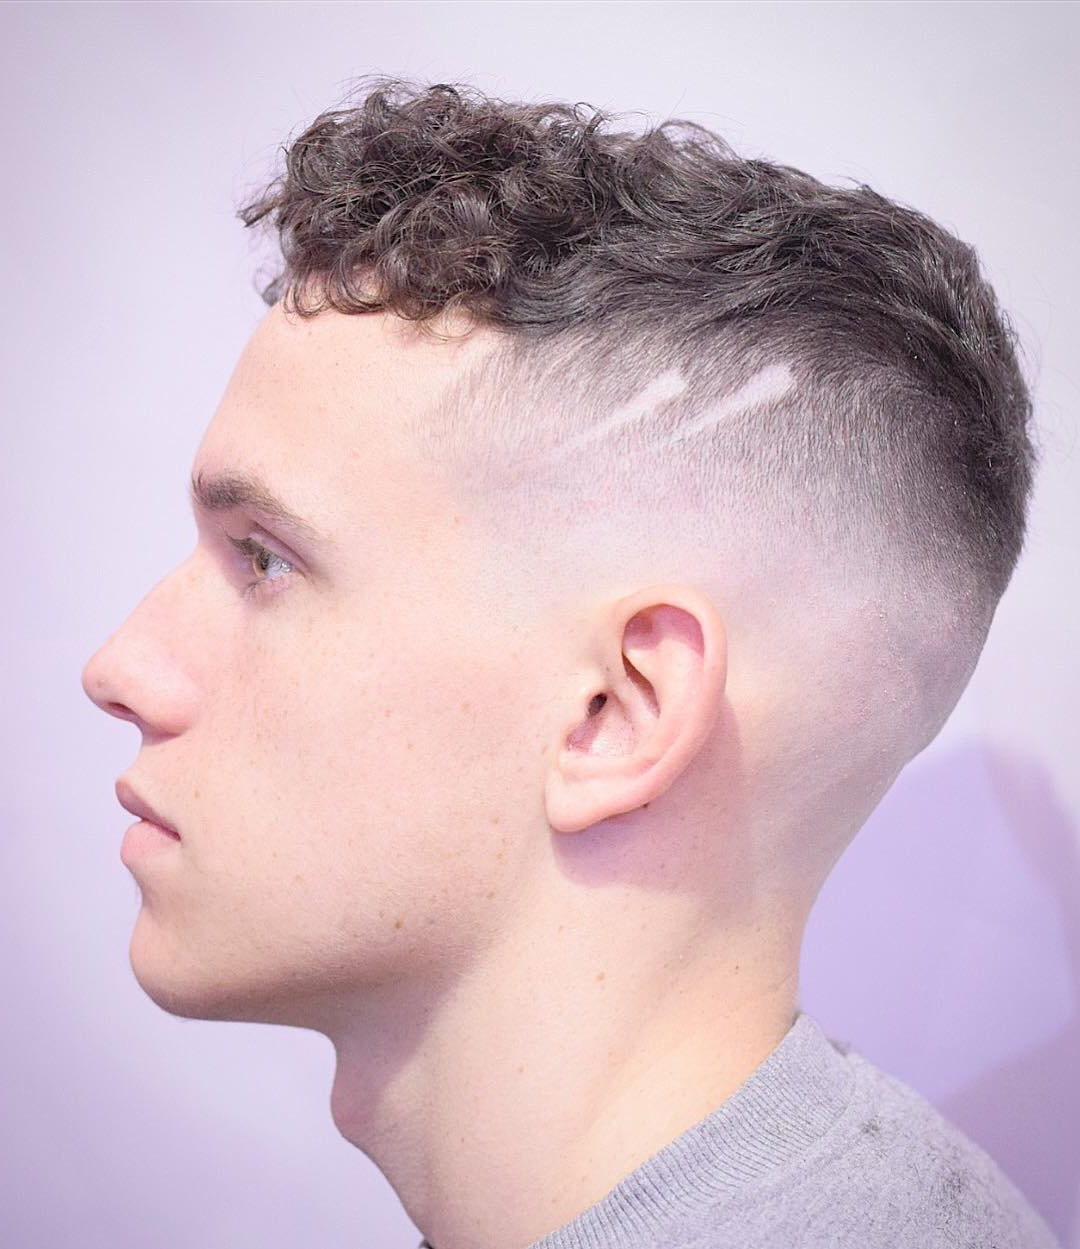 Cool Haircuts With Shaved Sides Throughout Most Current Medium Hairstyles With Shaved Side (View 3 of 20)